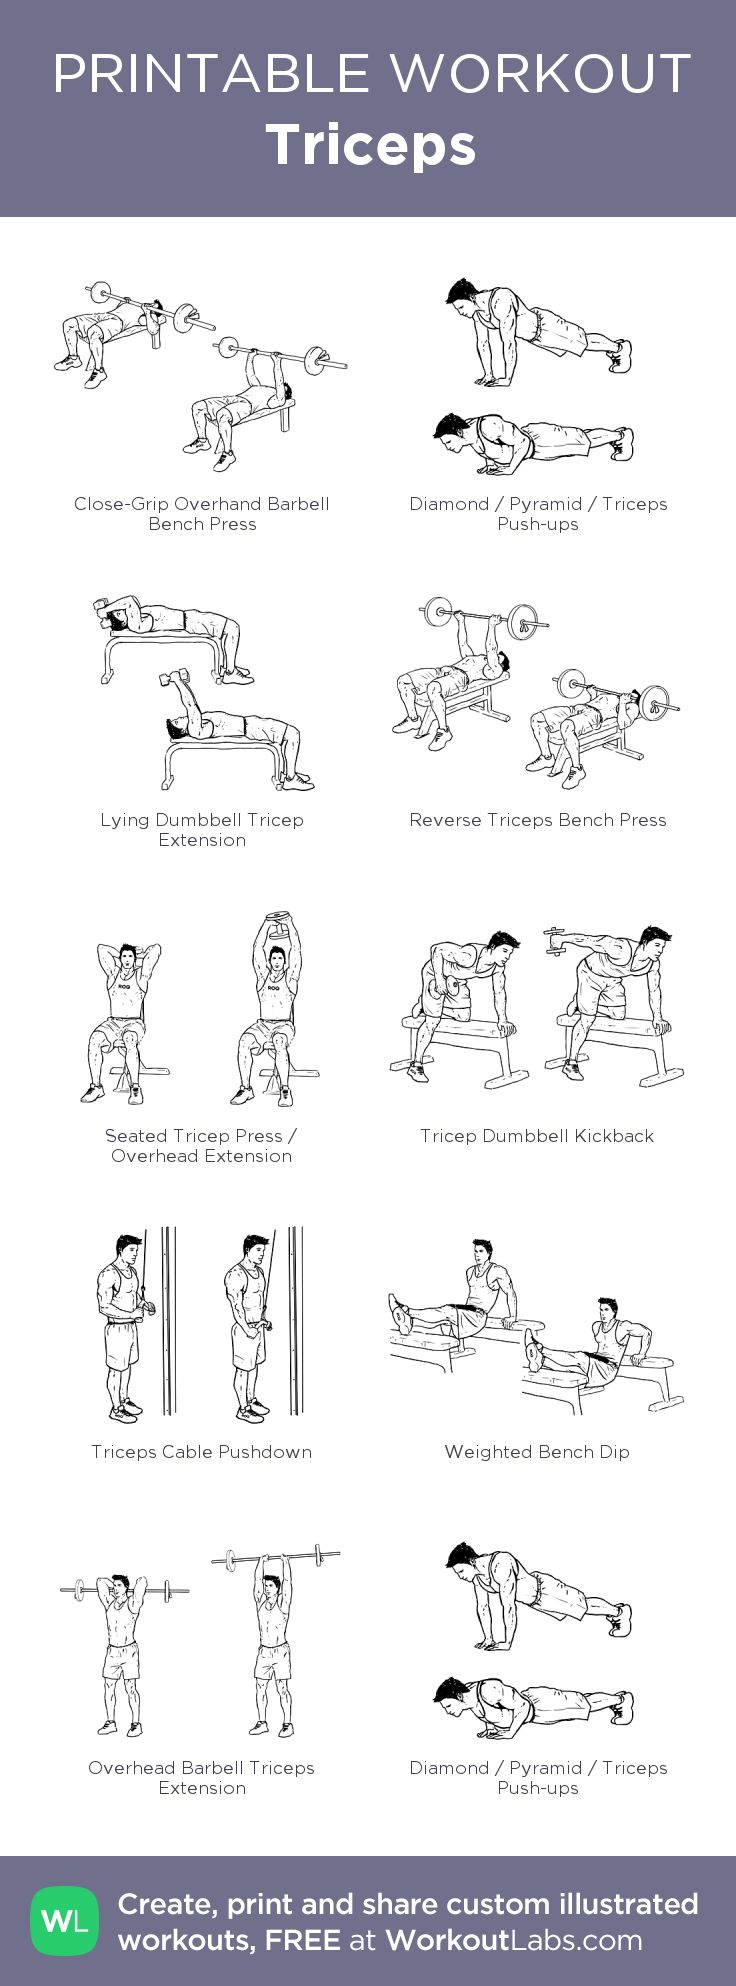 Triceps:my visual workout created at WorkoutLabs.com • Click through to customize and download as a FREE PDF! #customworkout